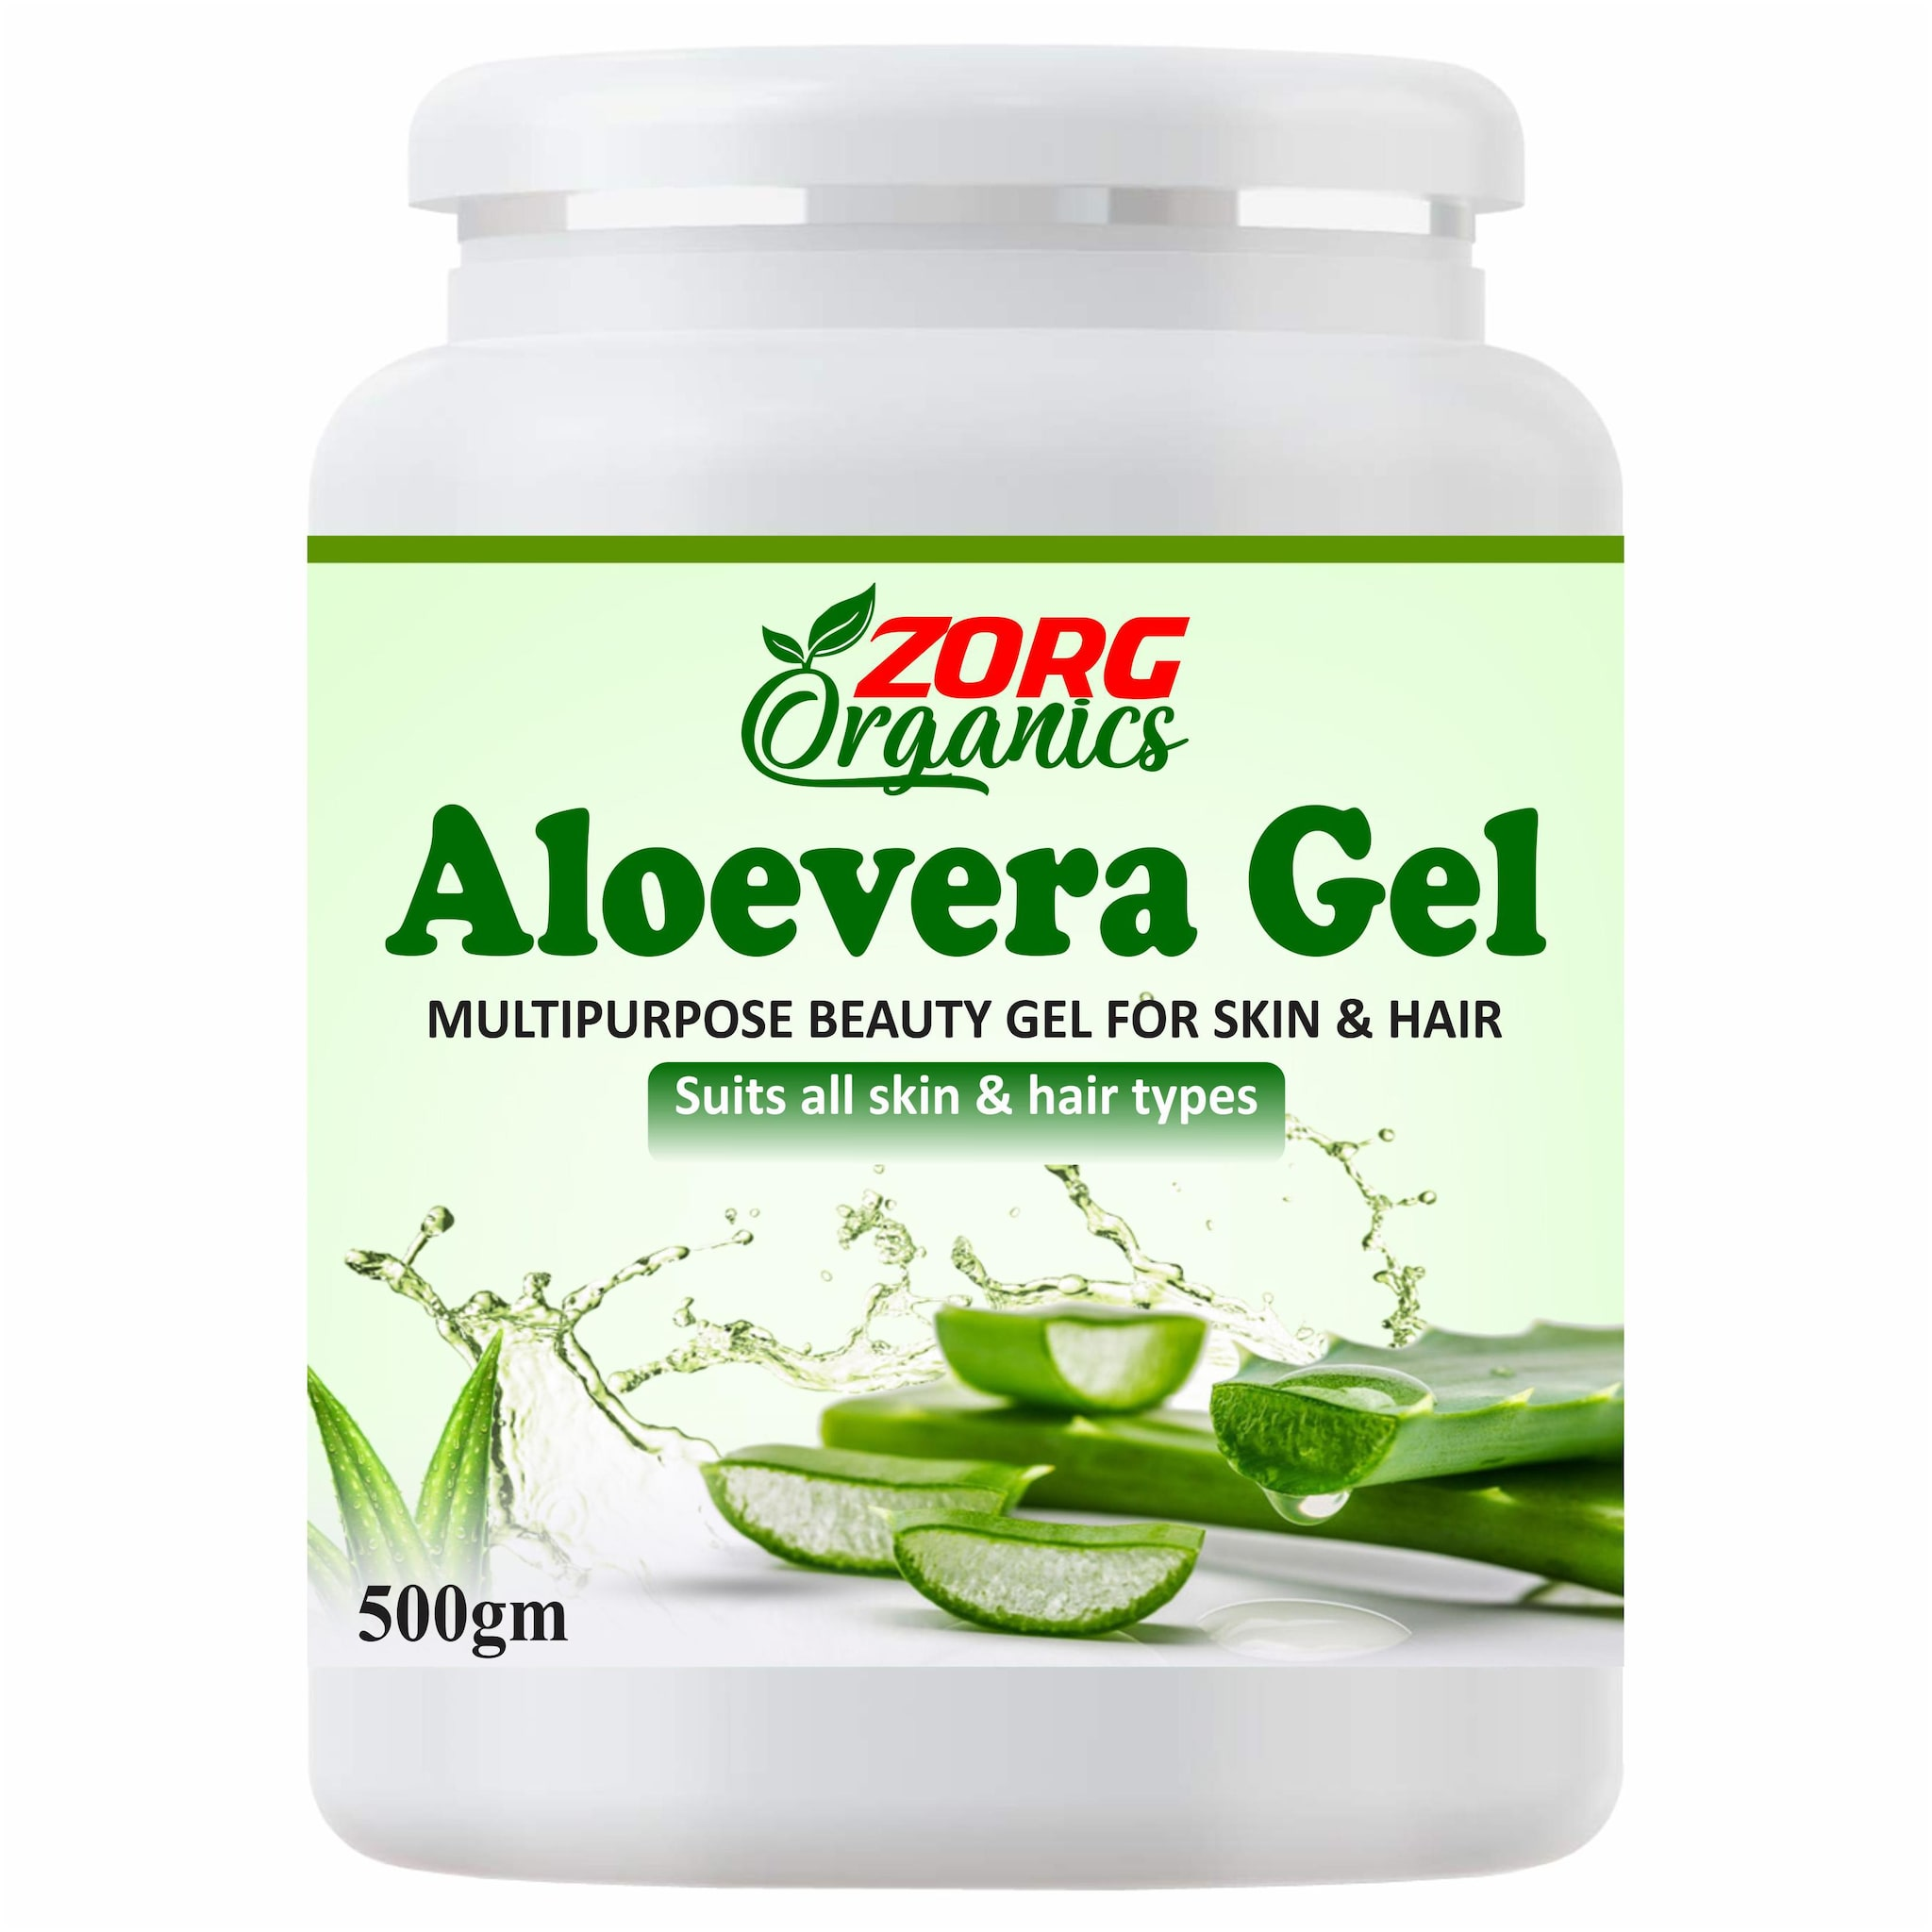 Zorg Organics Pure Natural Aloe Vera Gel - Ideal for Skin Treatment;Face;Acne Scars;Hair Treatment (500 g) (Pack of 1)